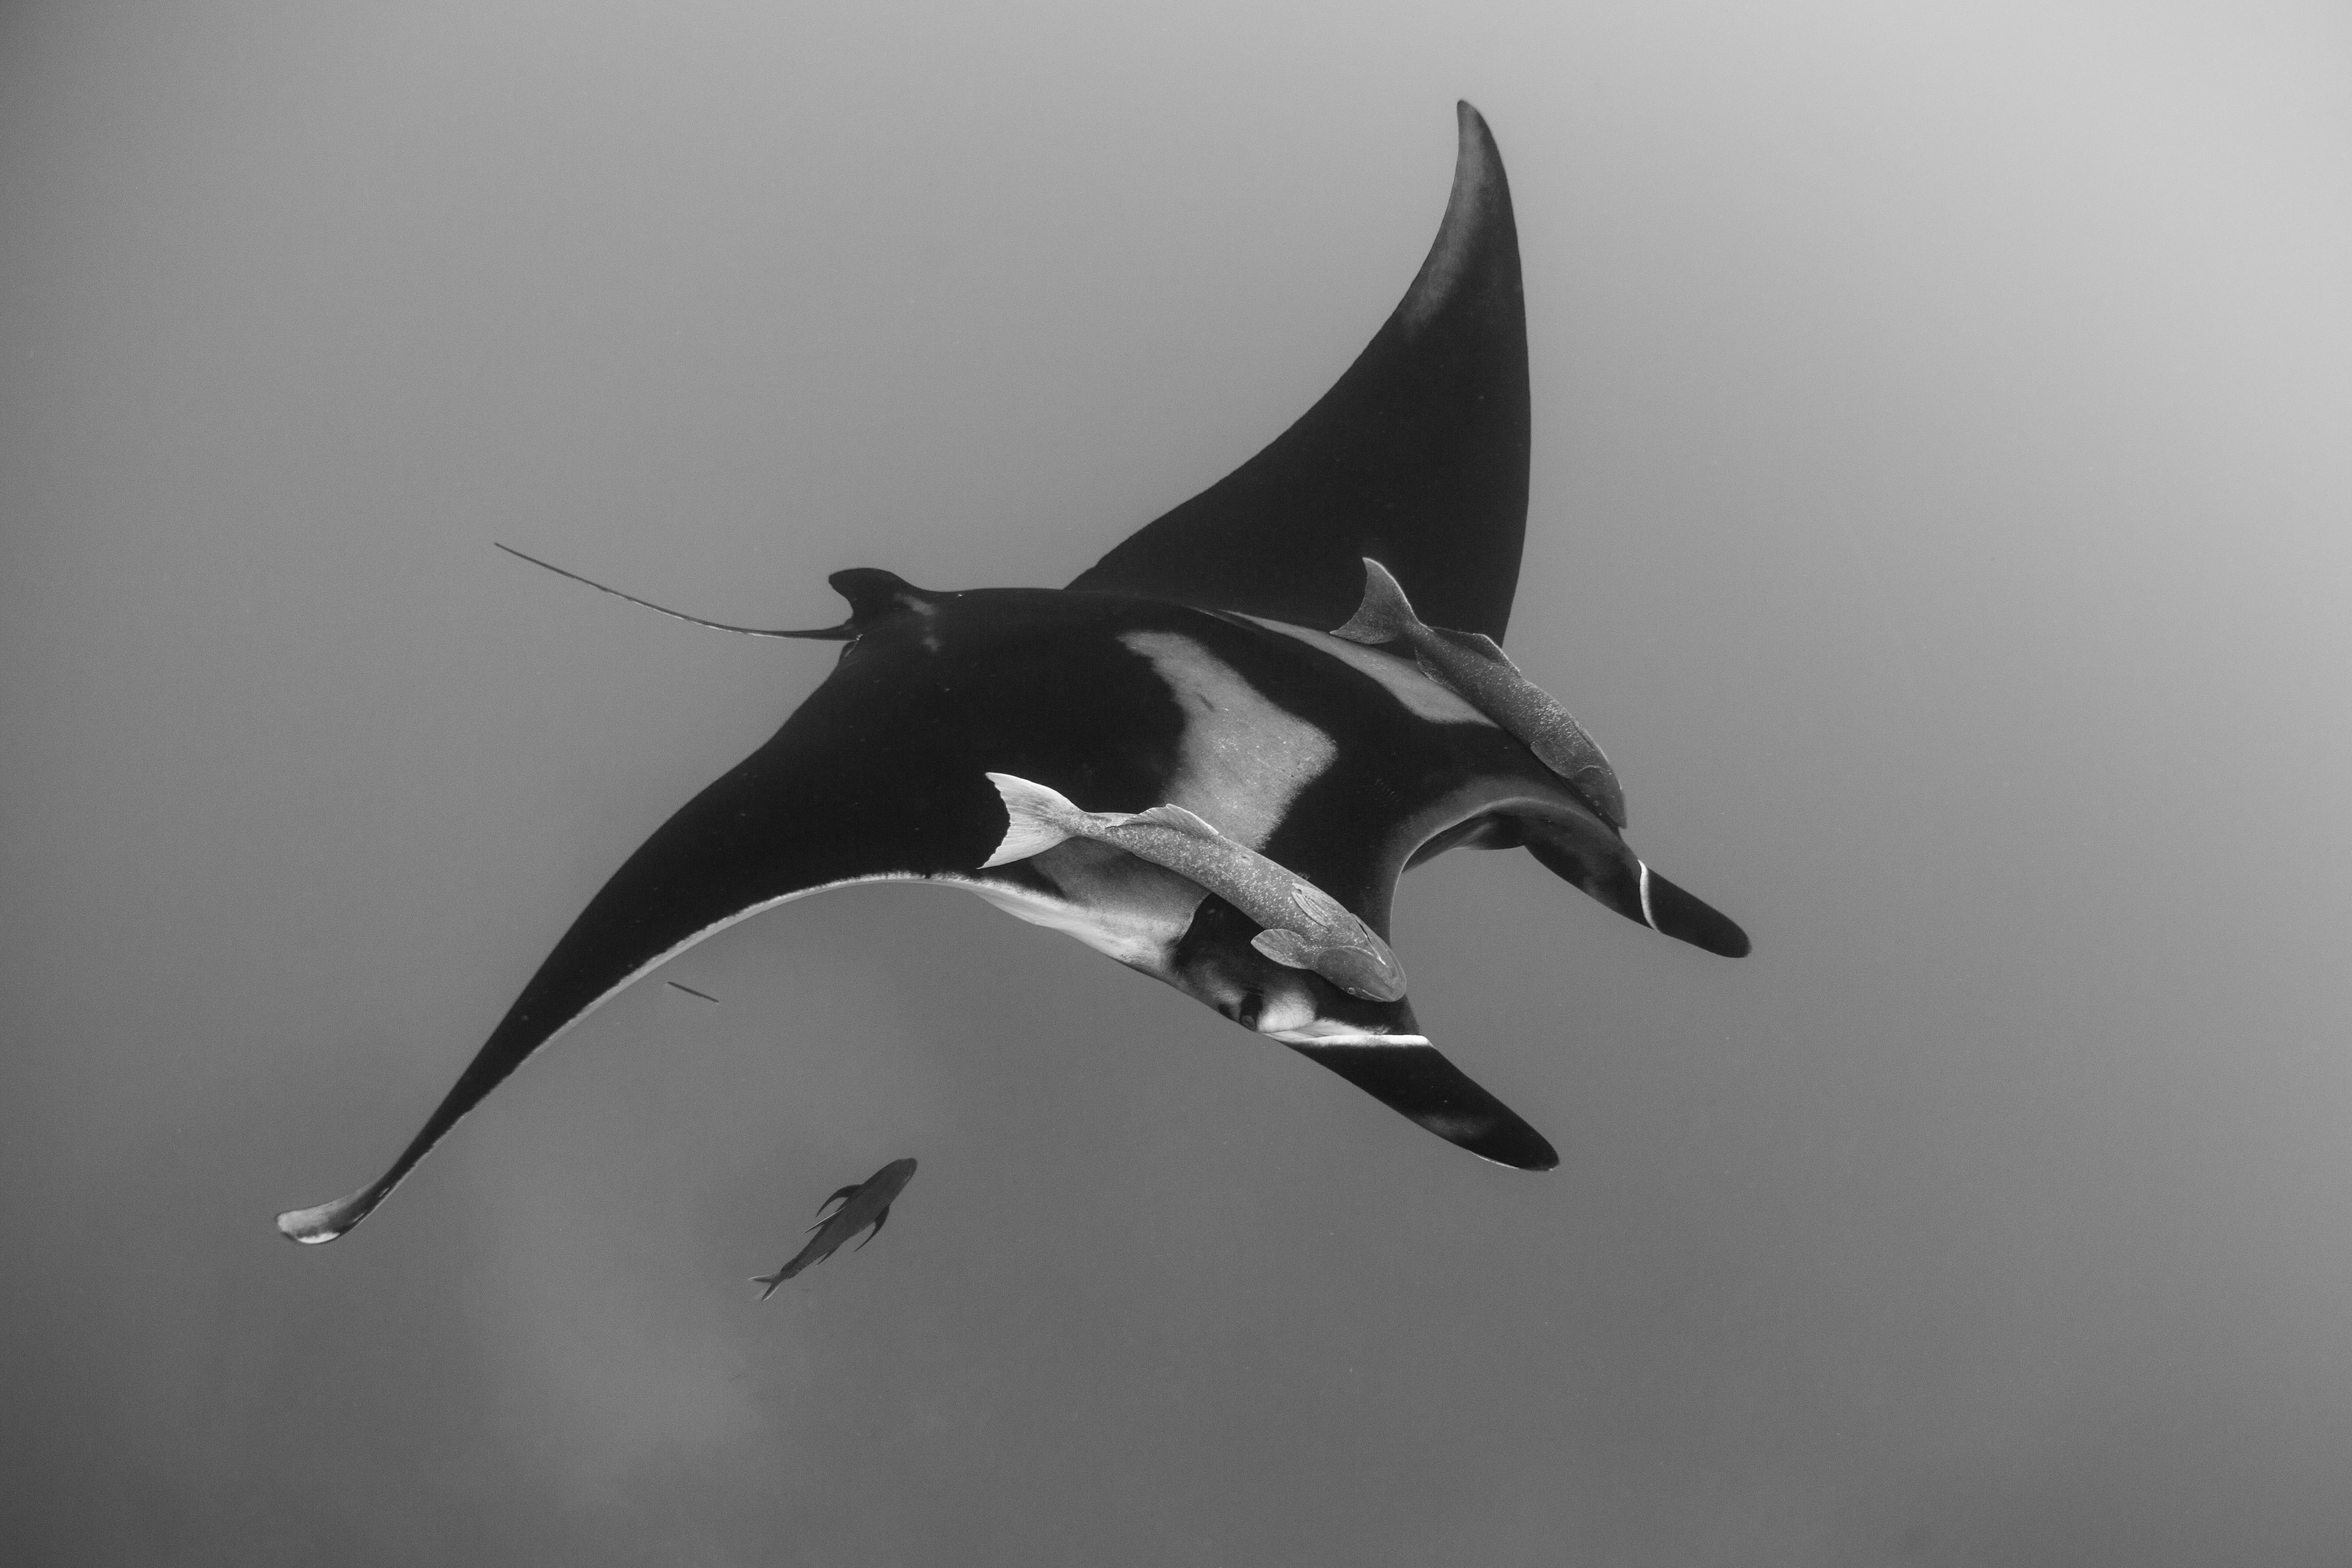 grayscale photo of sting ray